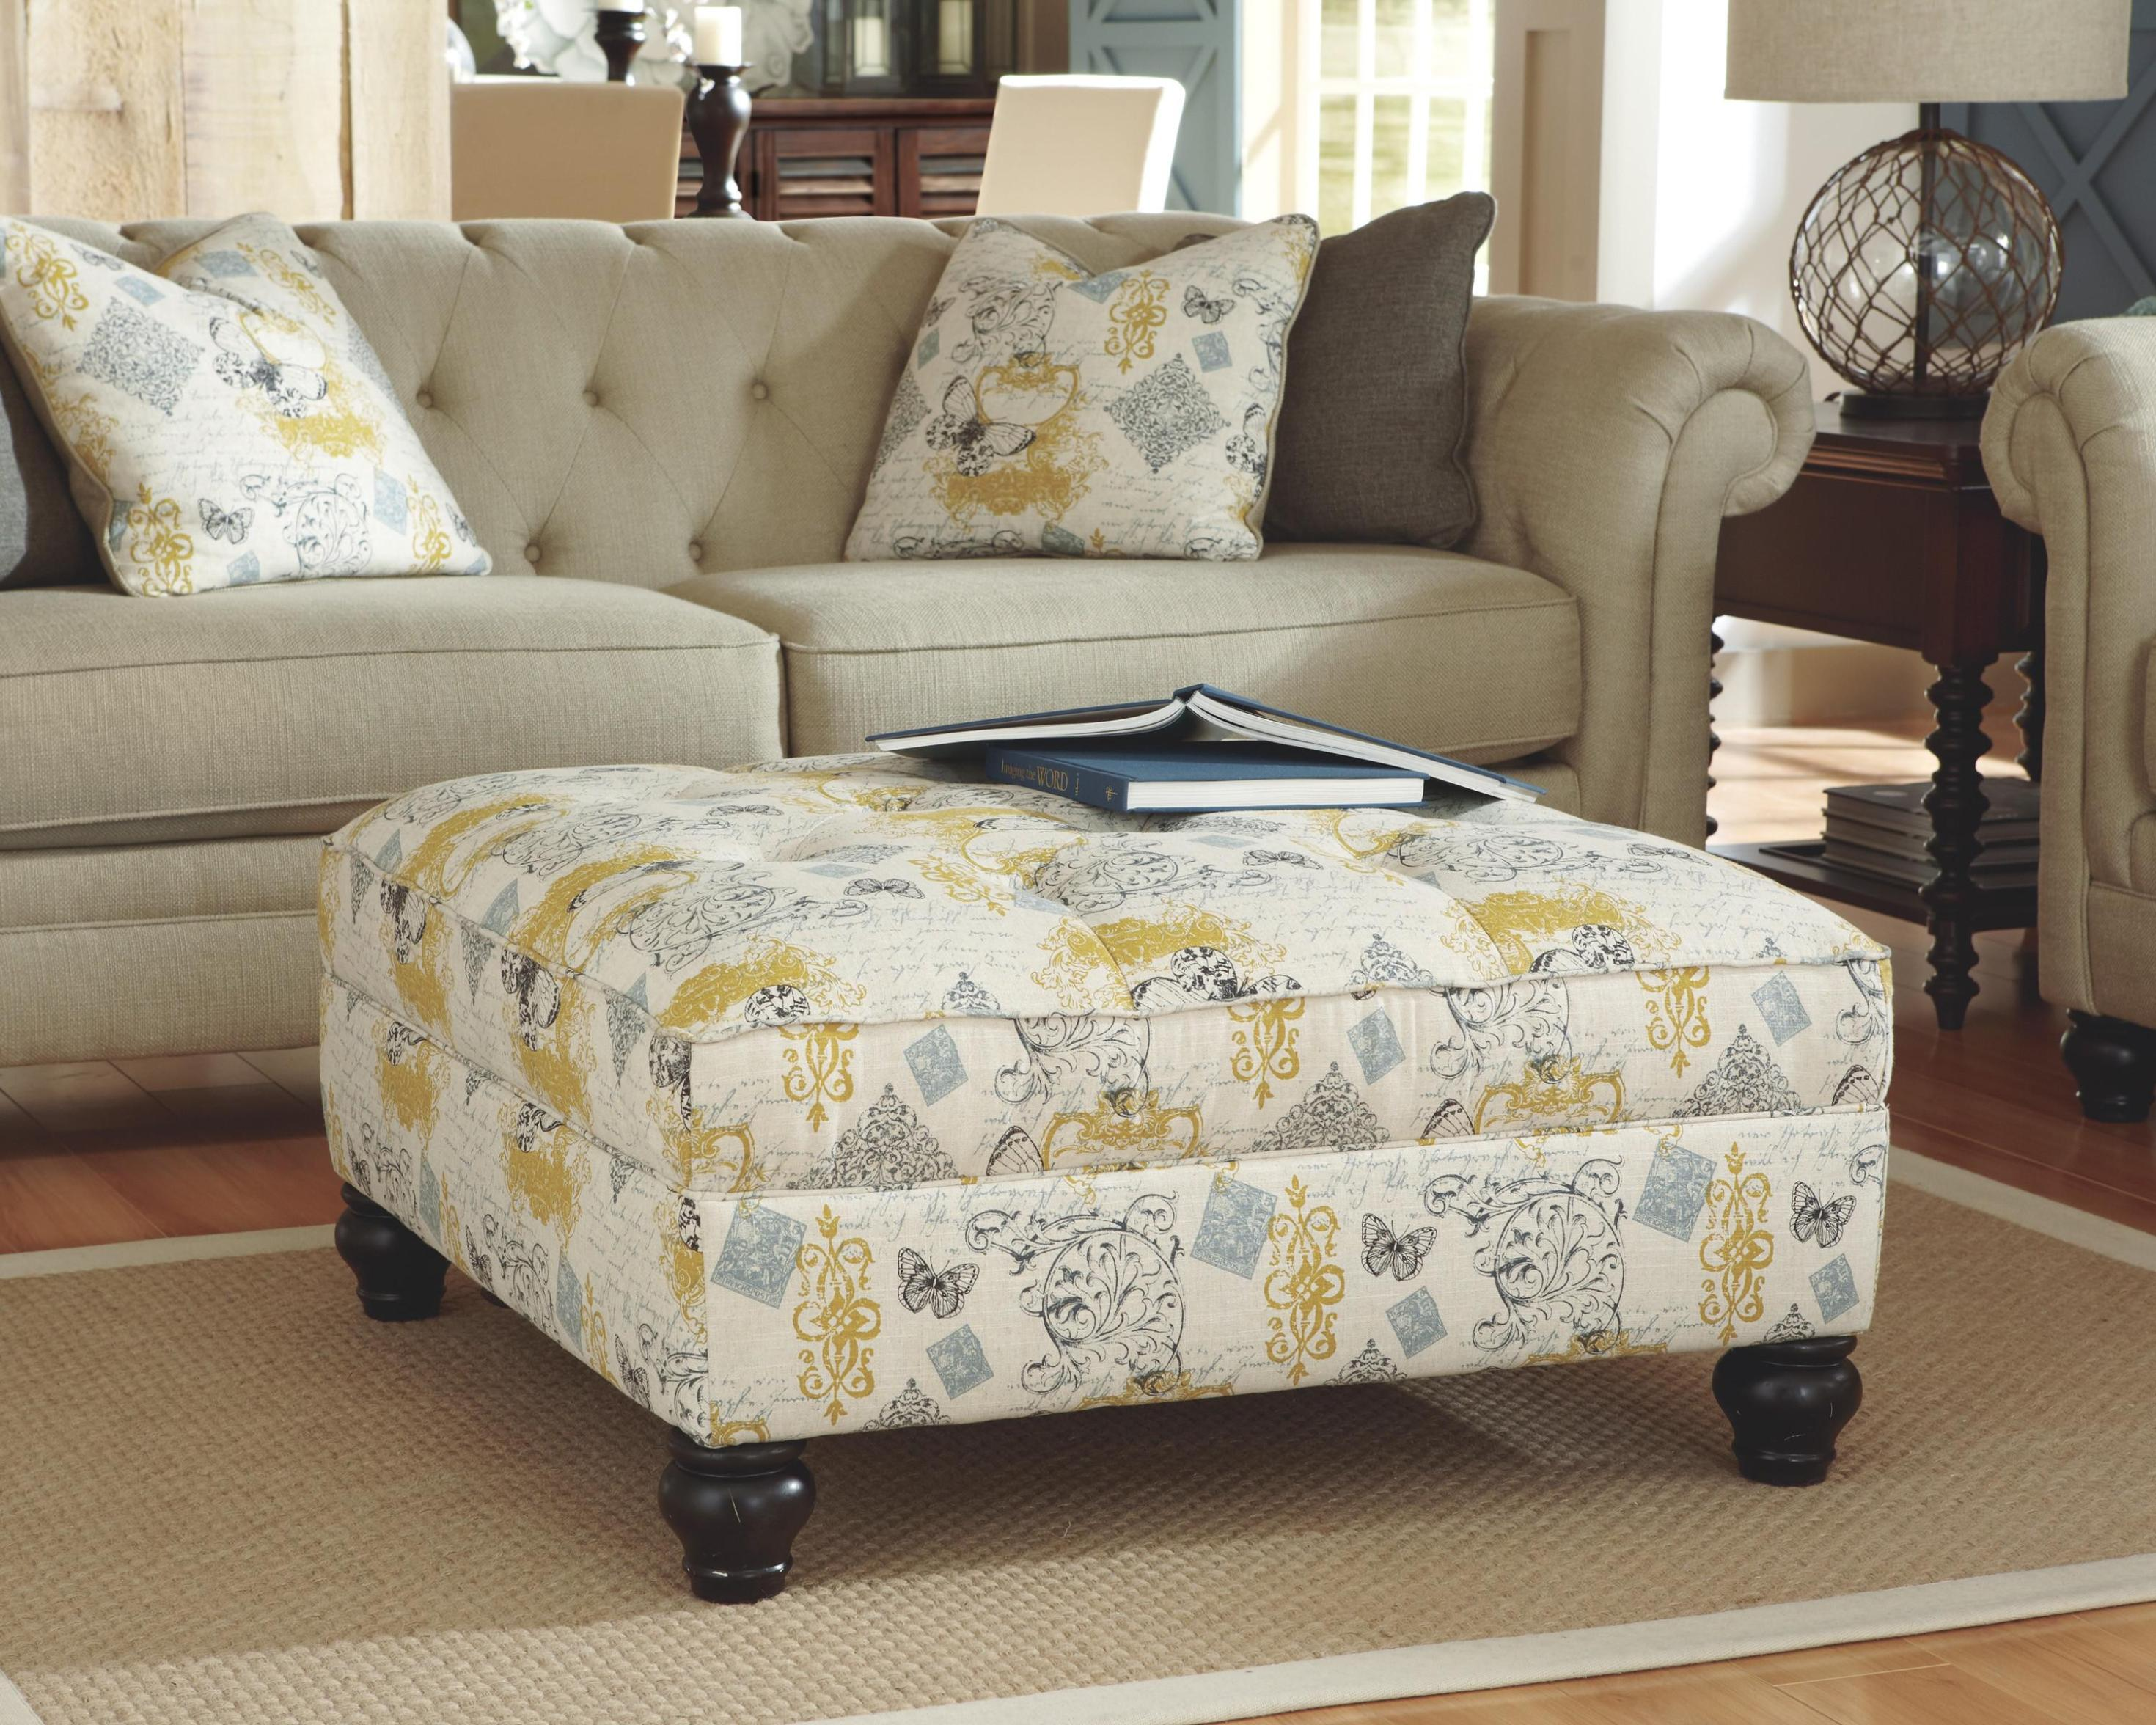 Image of: Oversized Chair And Ottoman Cover